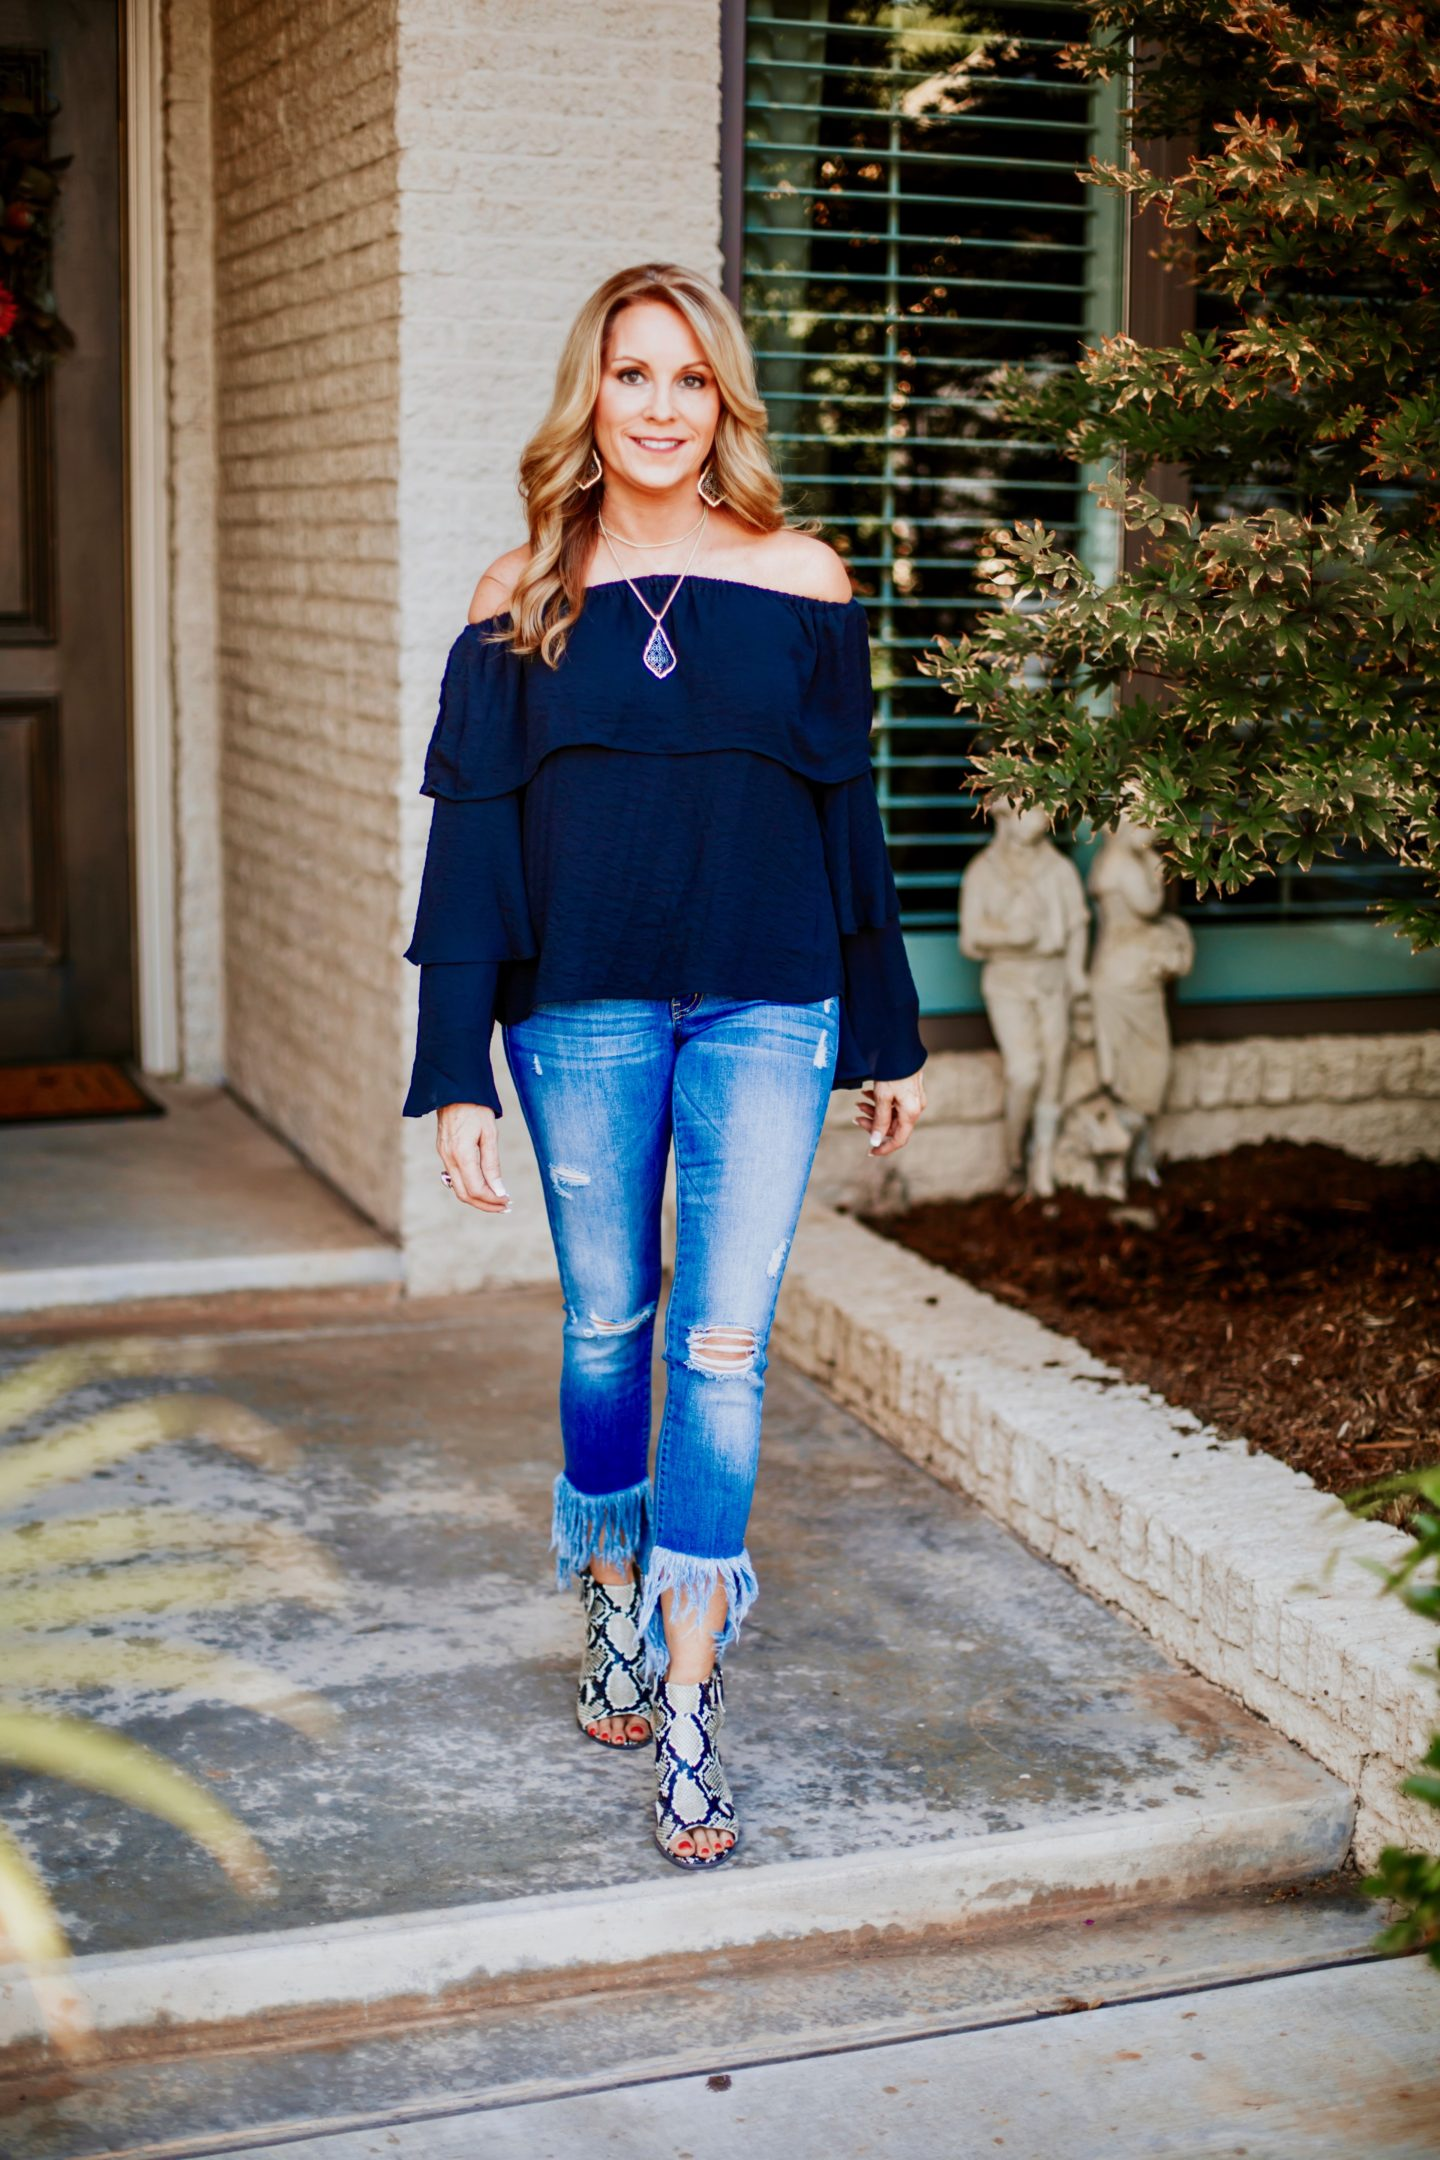 The fringe Jeans everyone asks about!!